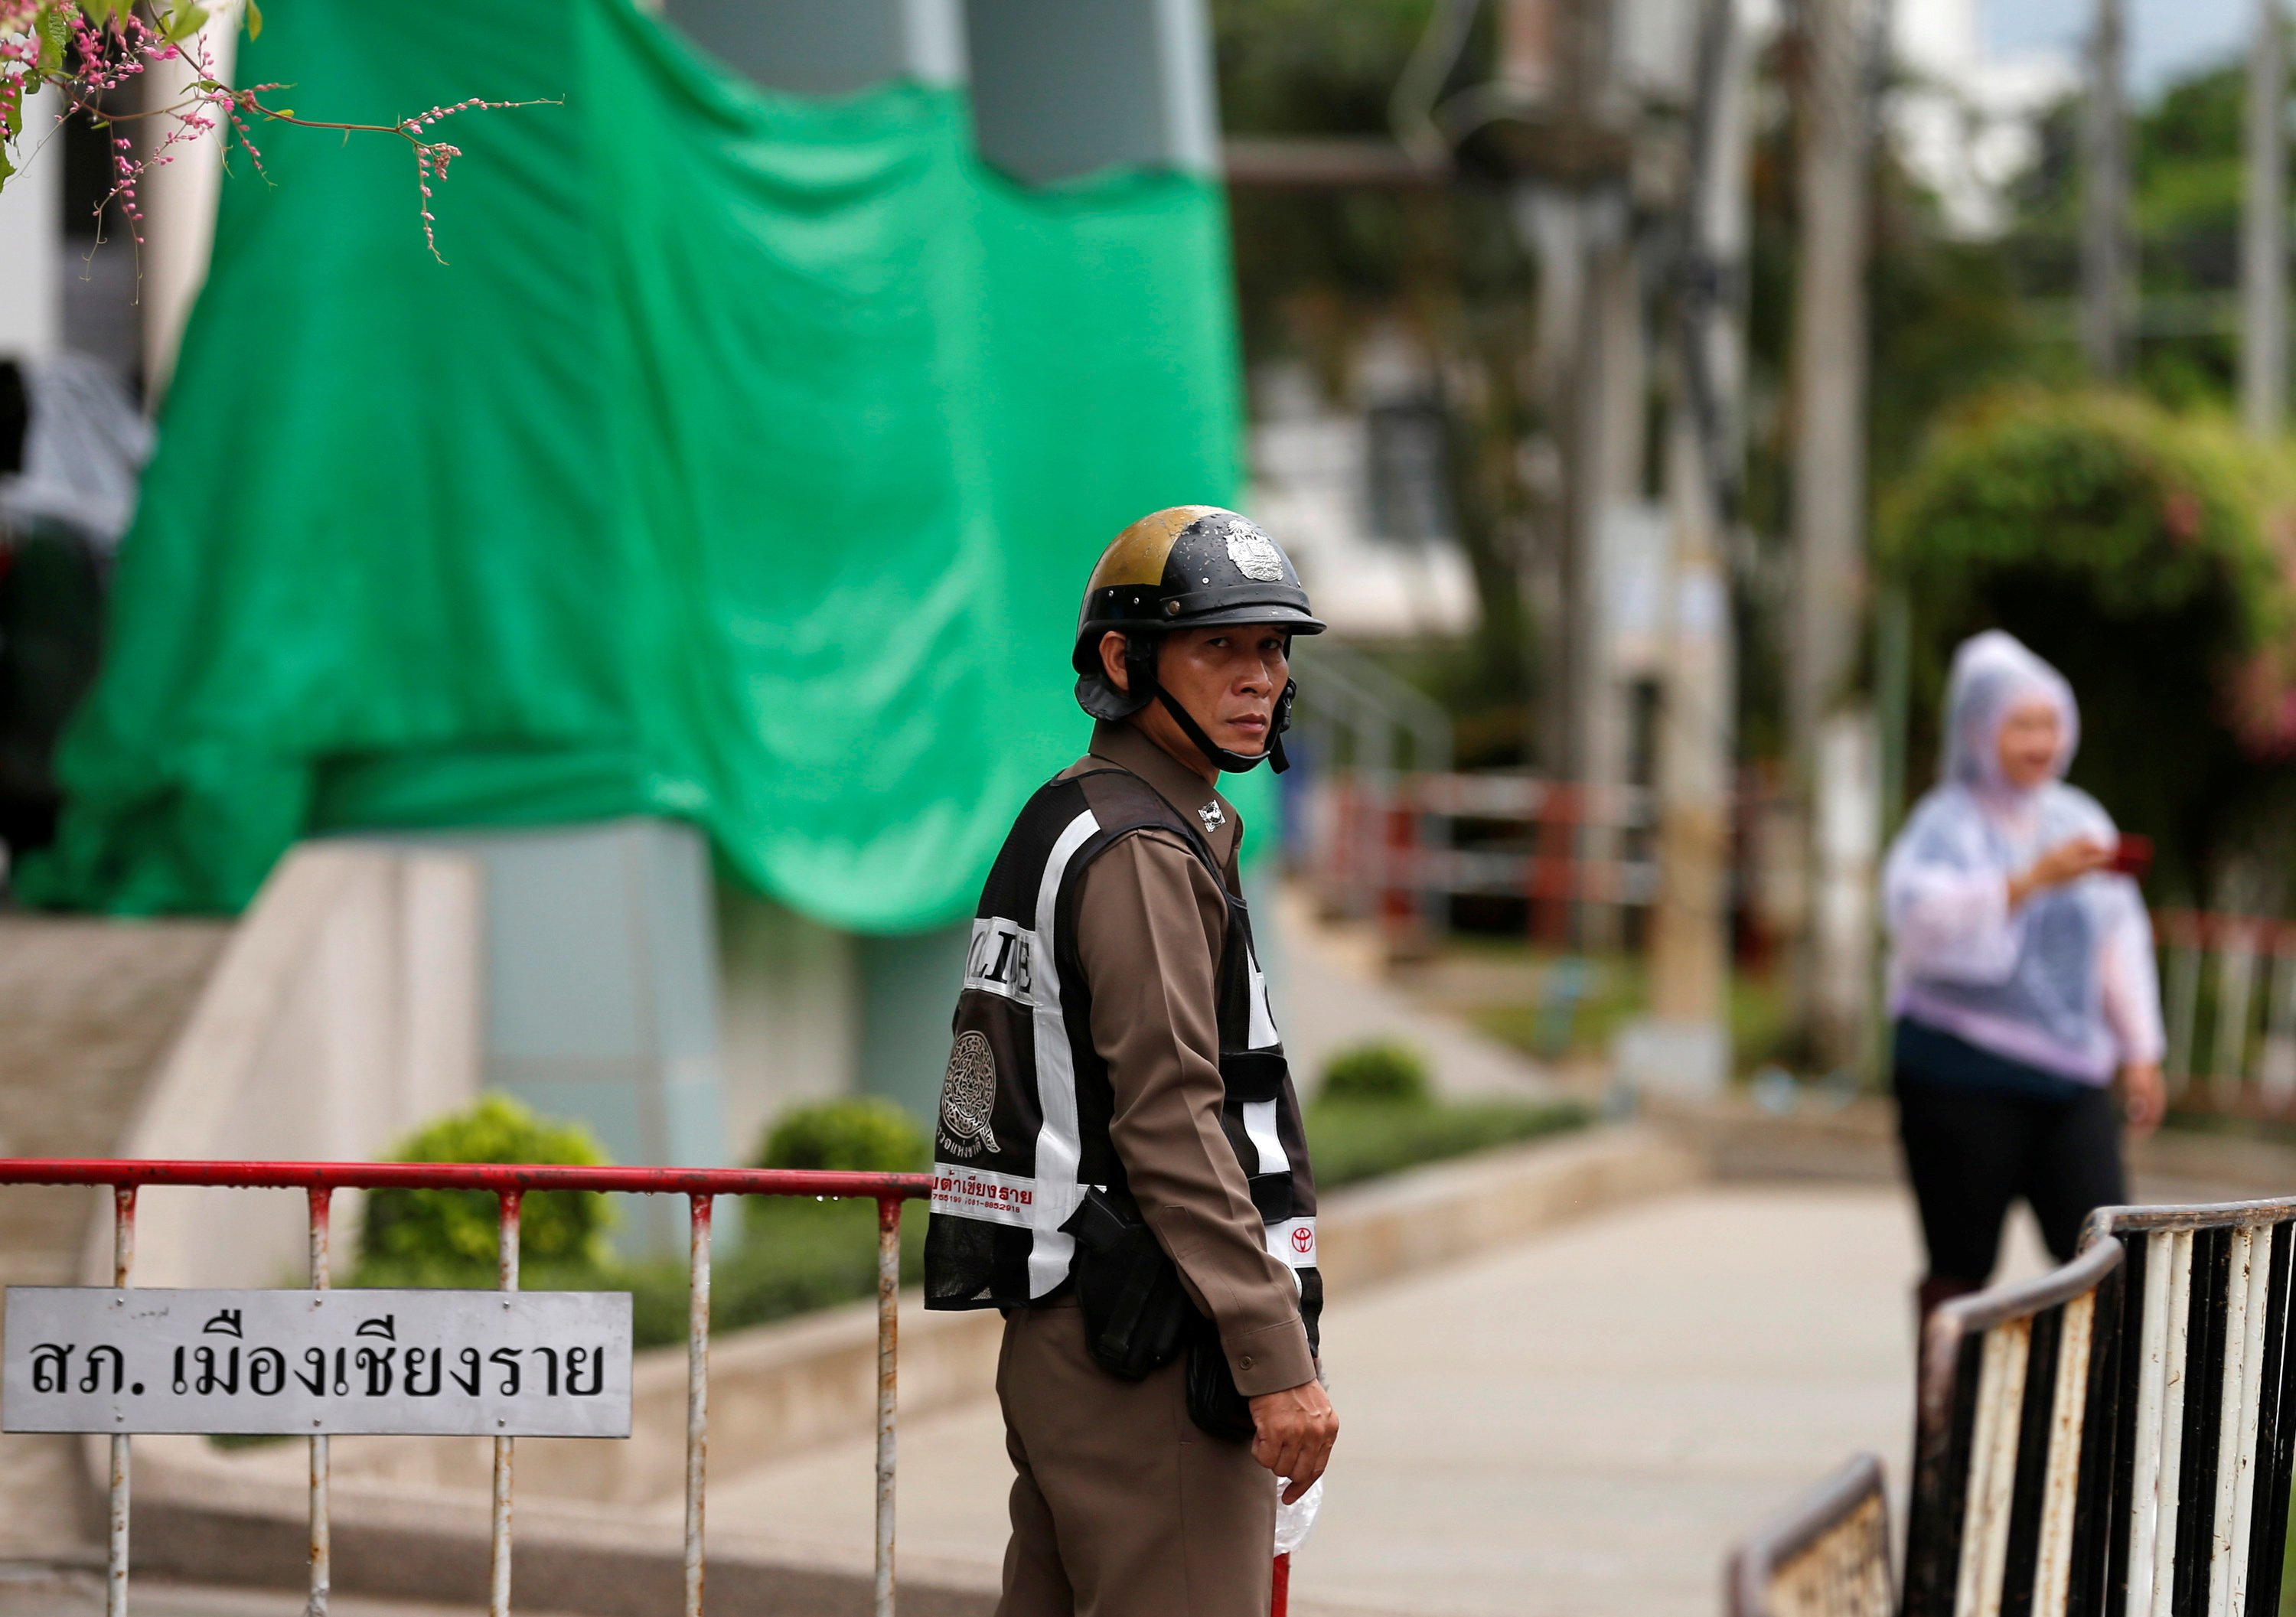 Police keep guard in front of the Chiang Rai hospital where the 12 schoolboys and their soccer coach tapped inside a flooded cave will get treatment, in the northern province of Chiang Rai